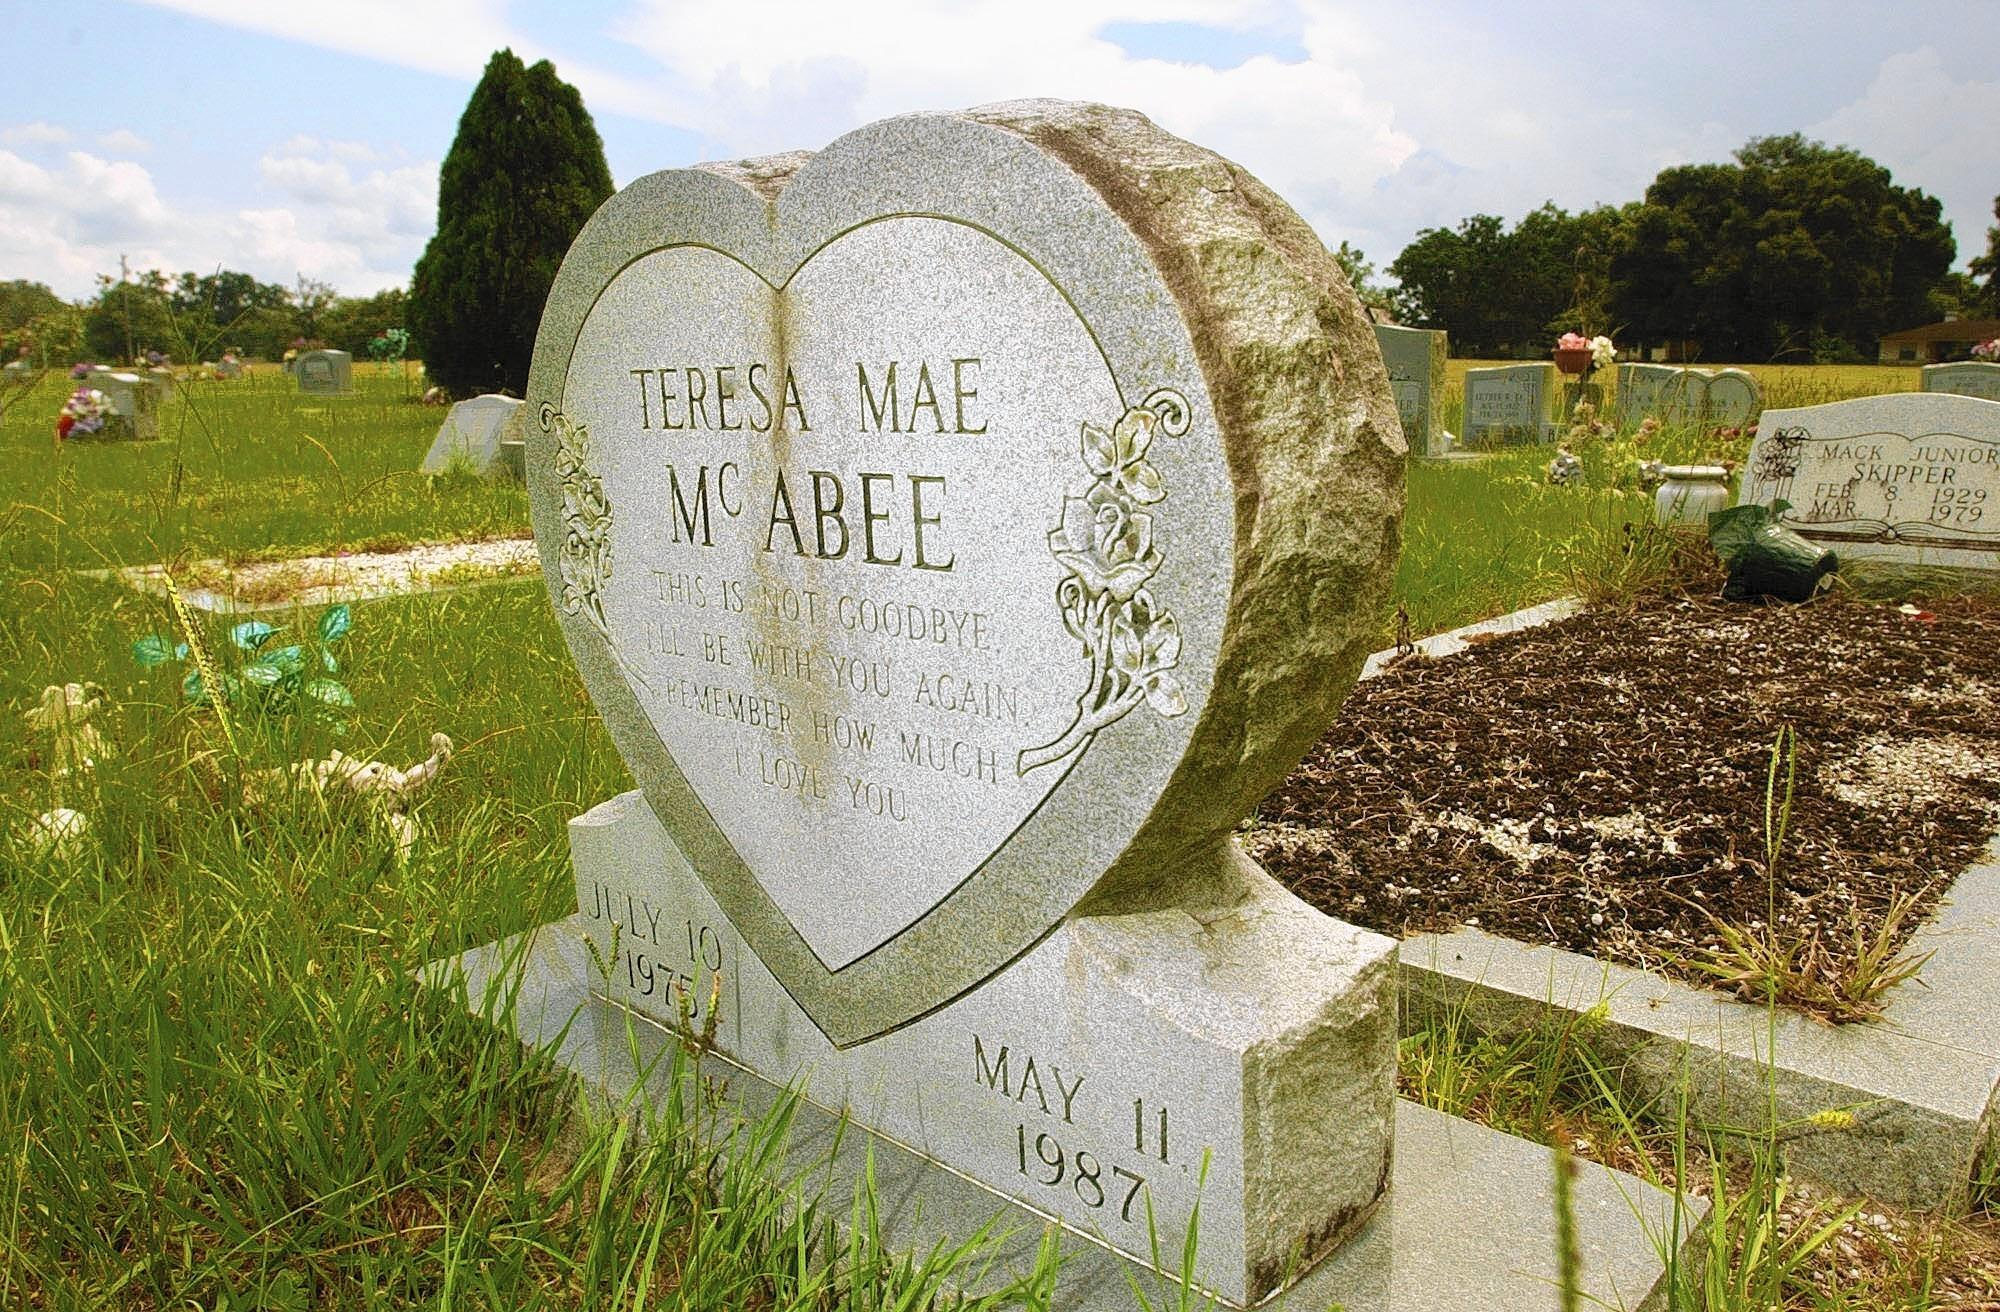 A heart-shaped stone with roses marks the grave of Teresa Mae McAbee at the Center Hill Cemetery on Thursday, July 10, 2003. Teresa was 11 years old when she was murdered in 1987.